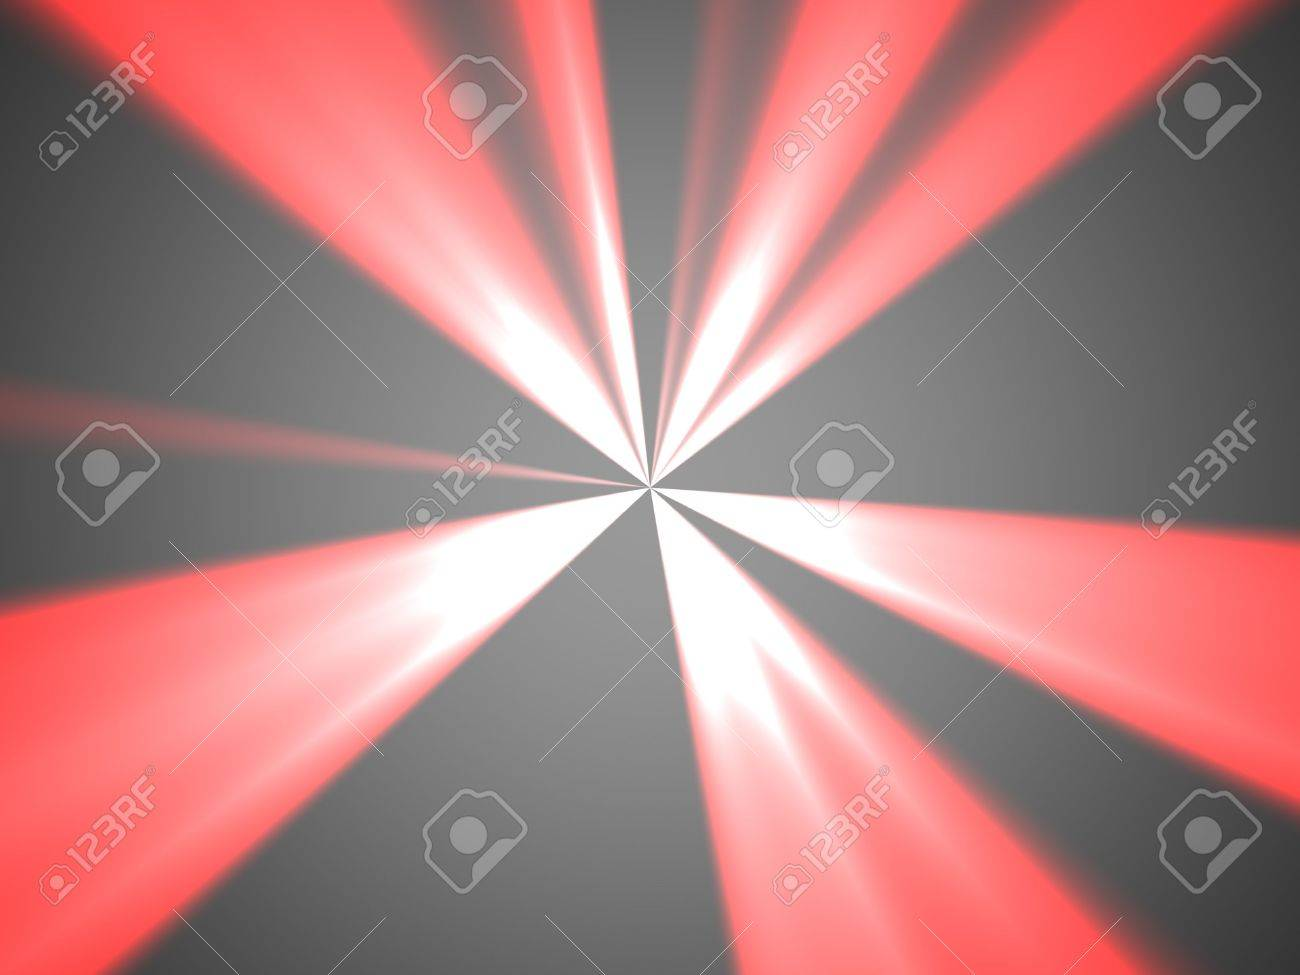 Red, white and gray abstract background with beams Stock Photo - 7554487